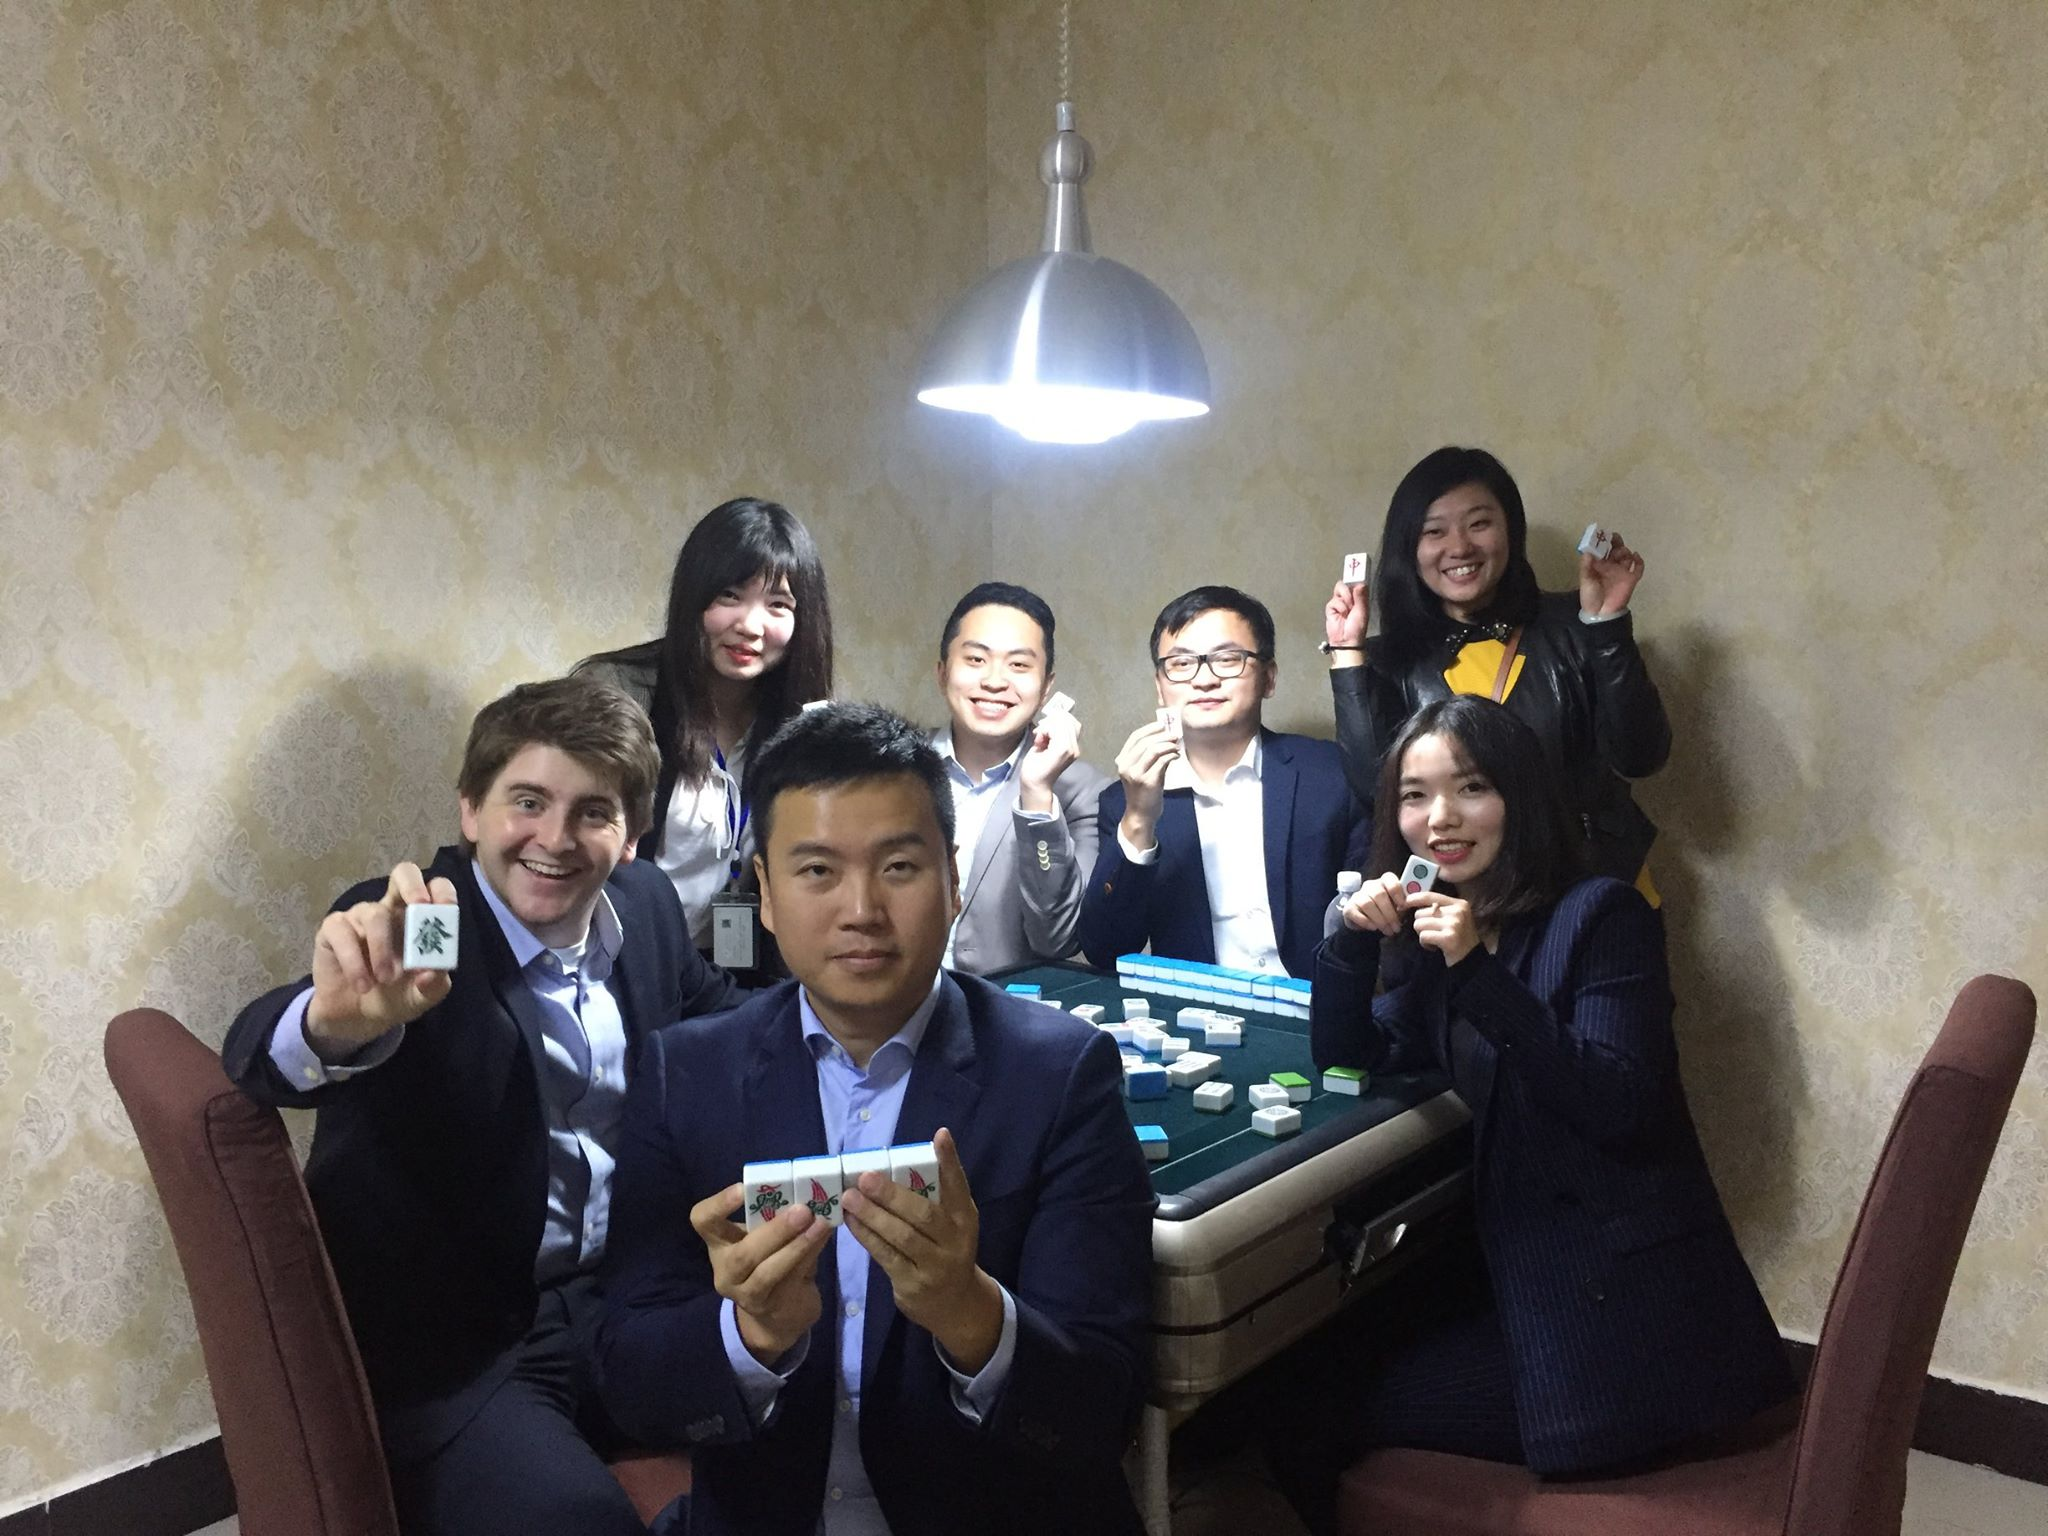 Dylan with his Princeton in Asia co-fellow (center, back) and their China pals learning to play mahjong in Xiangyang, Hubei province, late 2017.